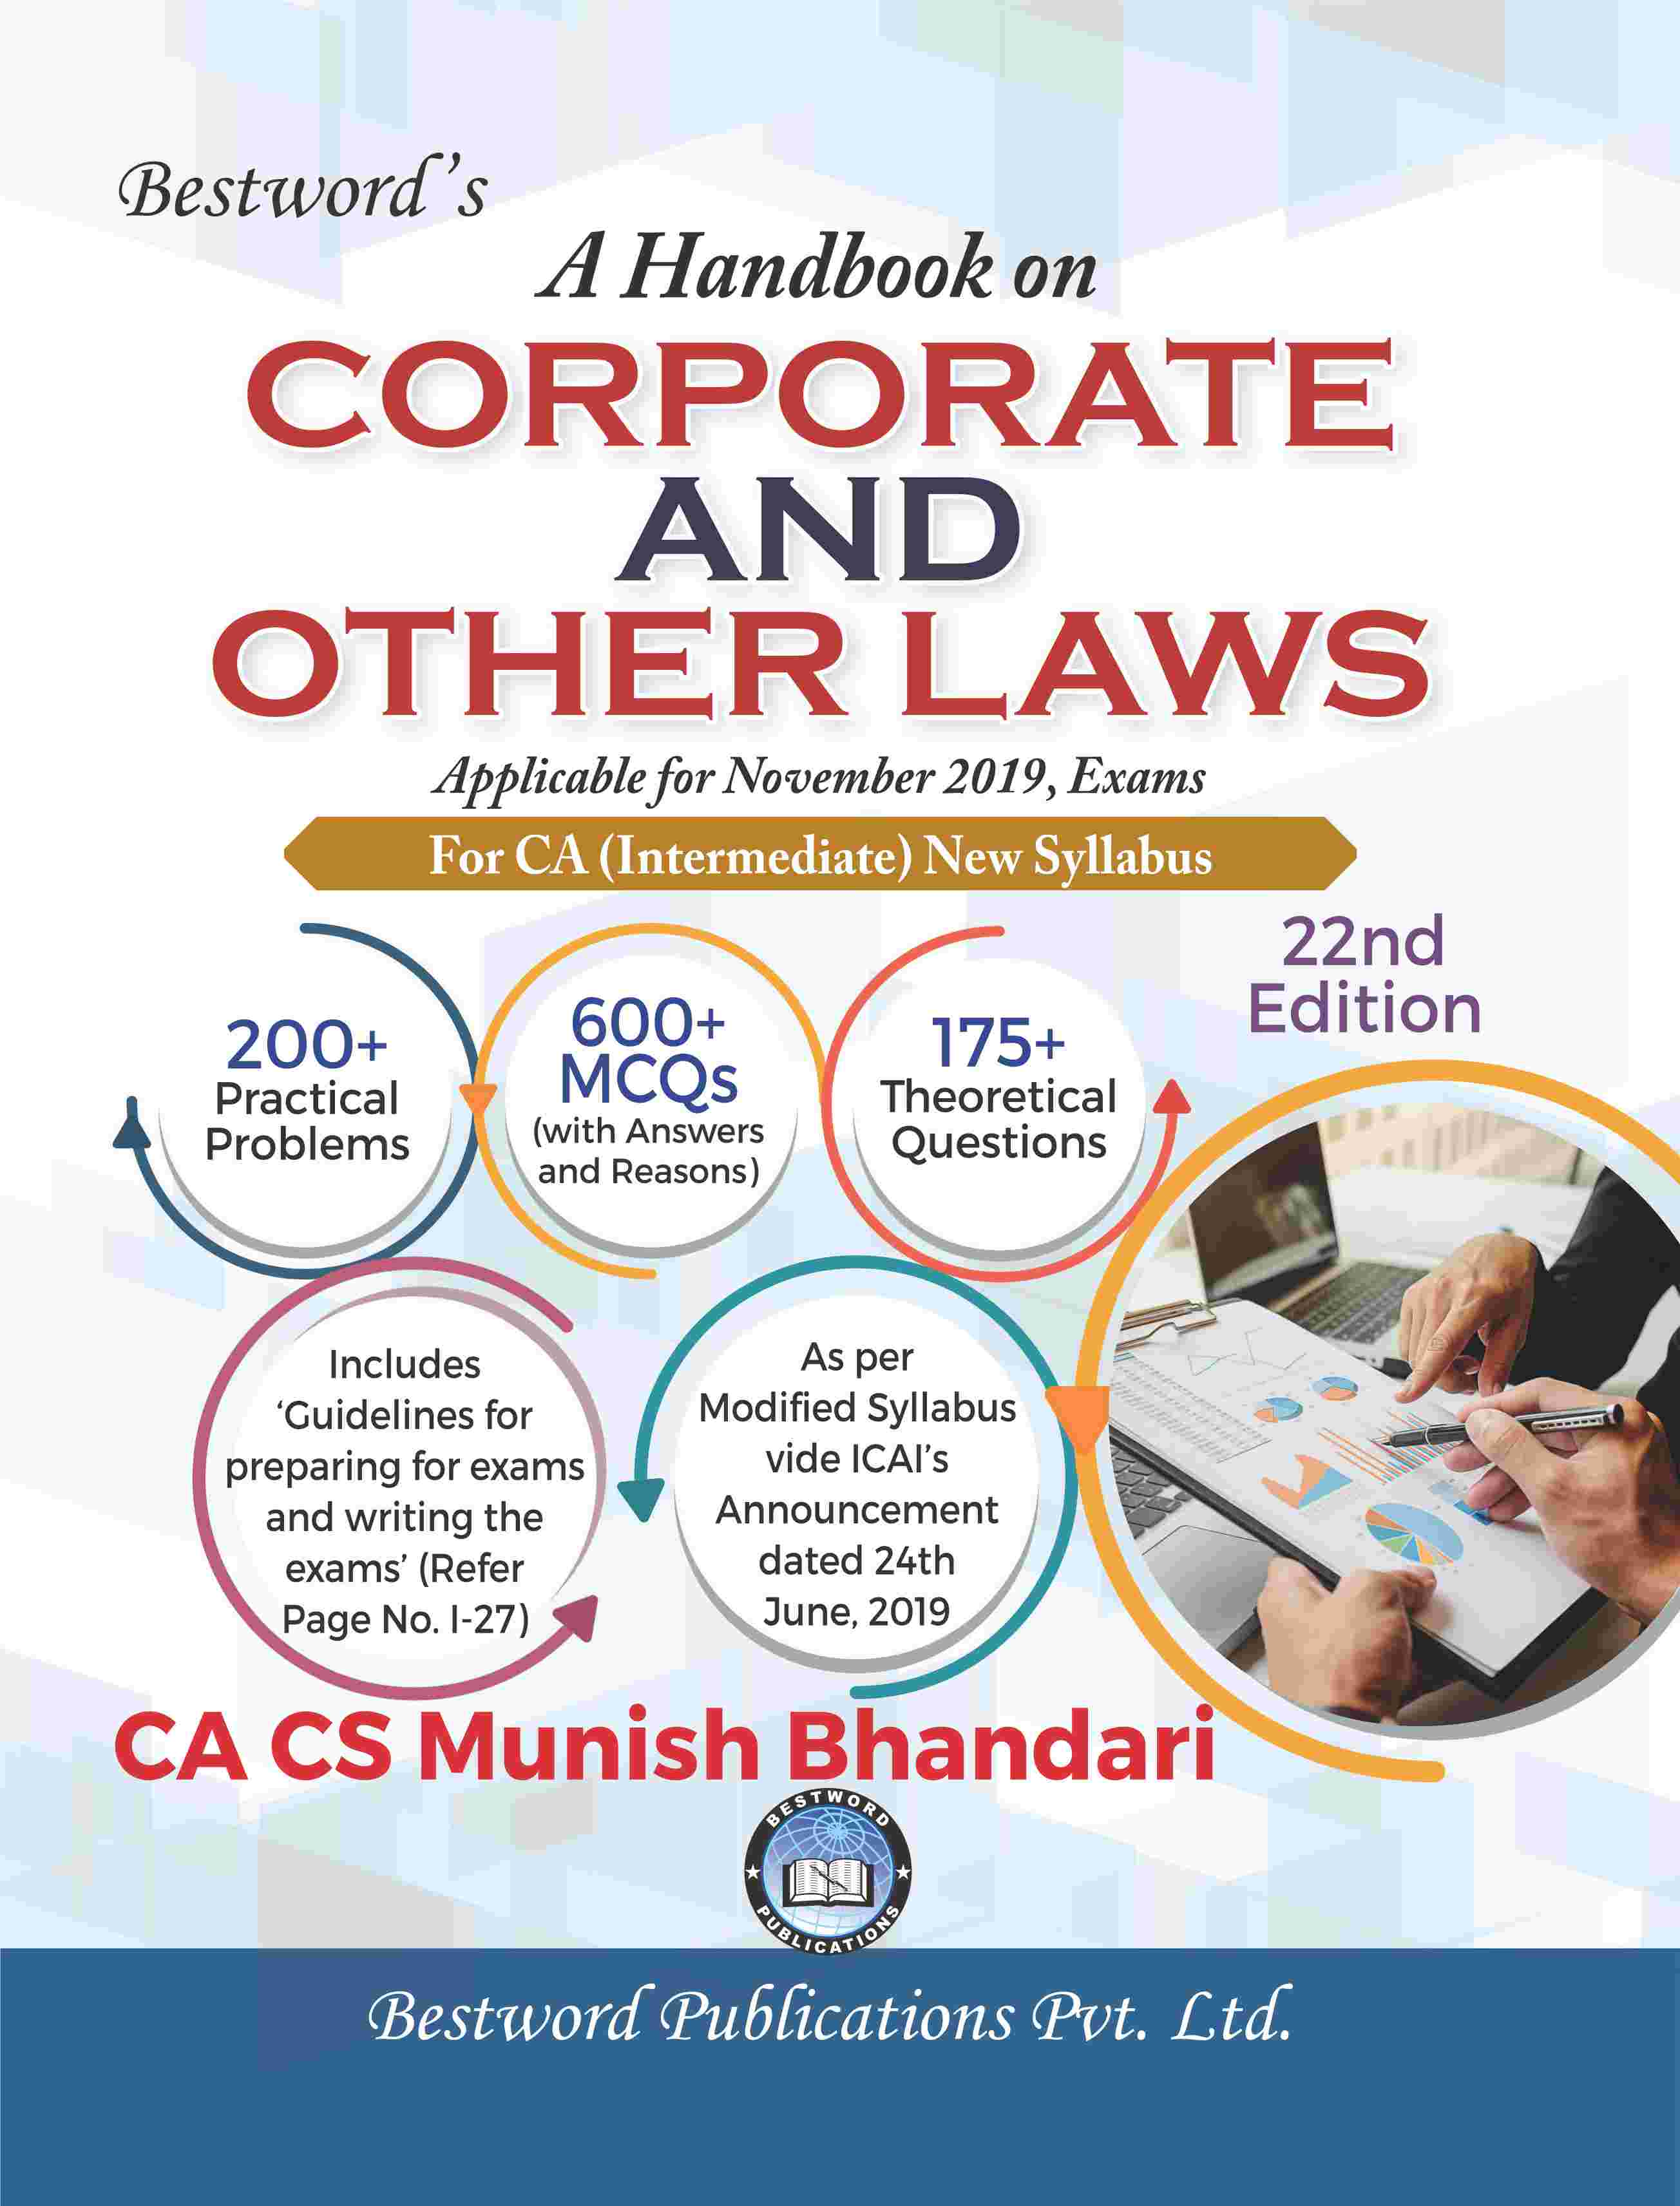 bestword's-a-handbook-on-corporate-and-other-laws---by-ca-cs-munish-bhandari---22nd-edition---for-ca-(intermediate)-november,-2019-exams-(new-syllabus)